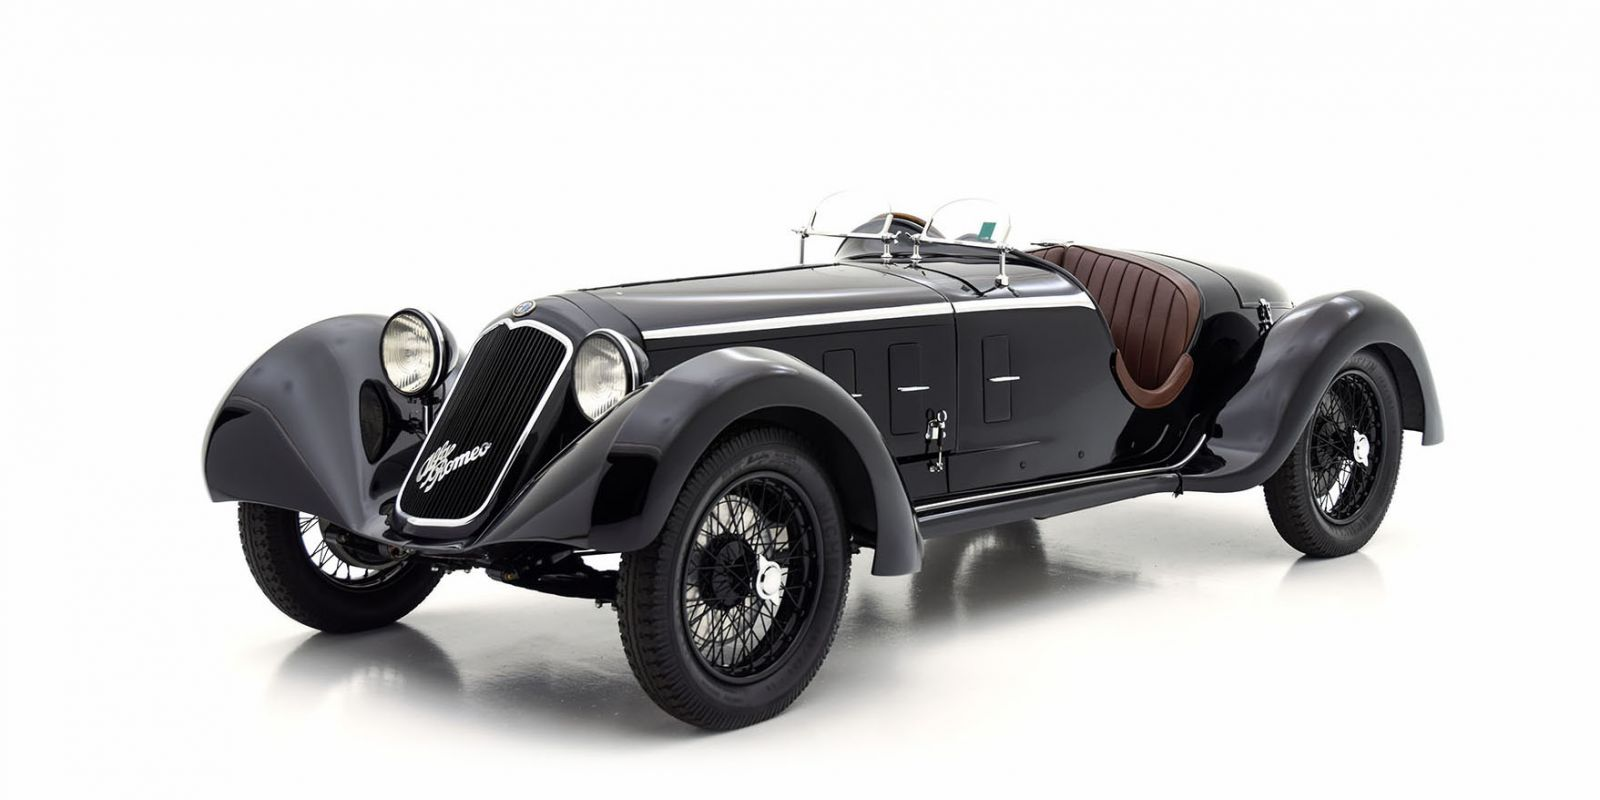 1929 Alfa Romeo 6C 1750SS For Sale at Hyman LTD